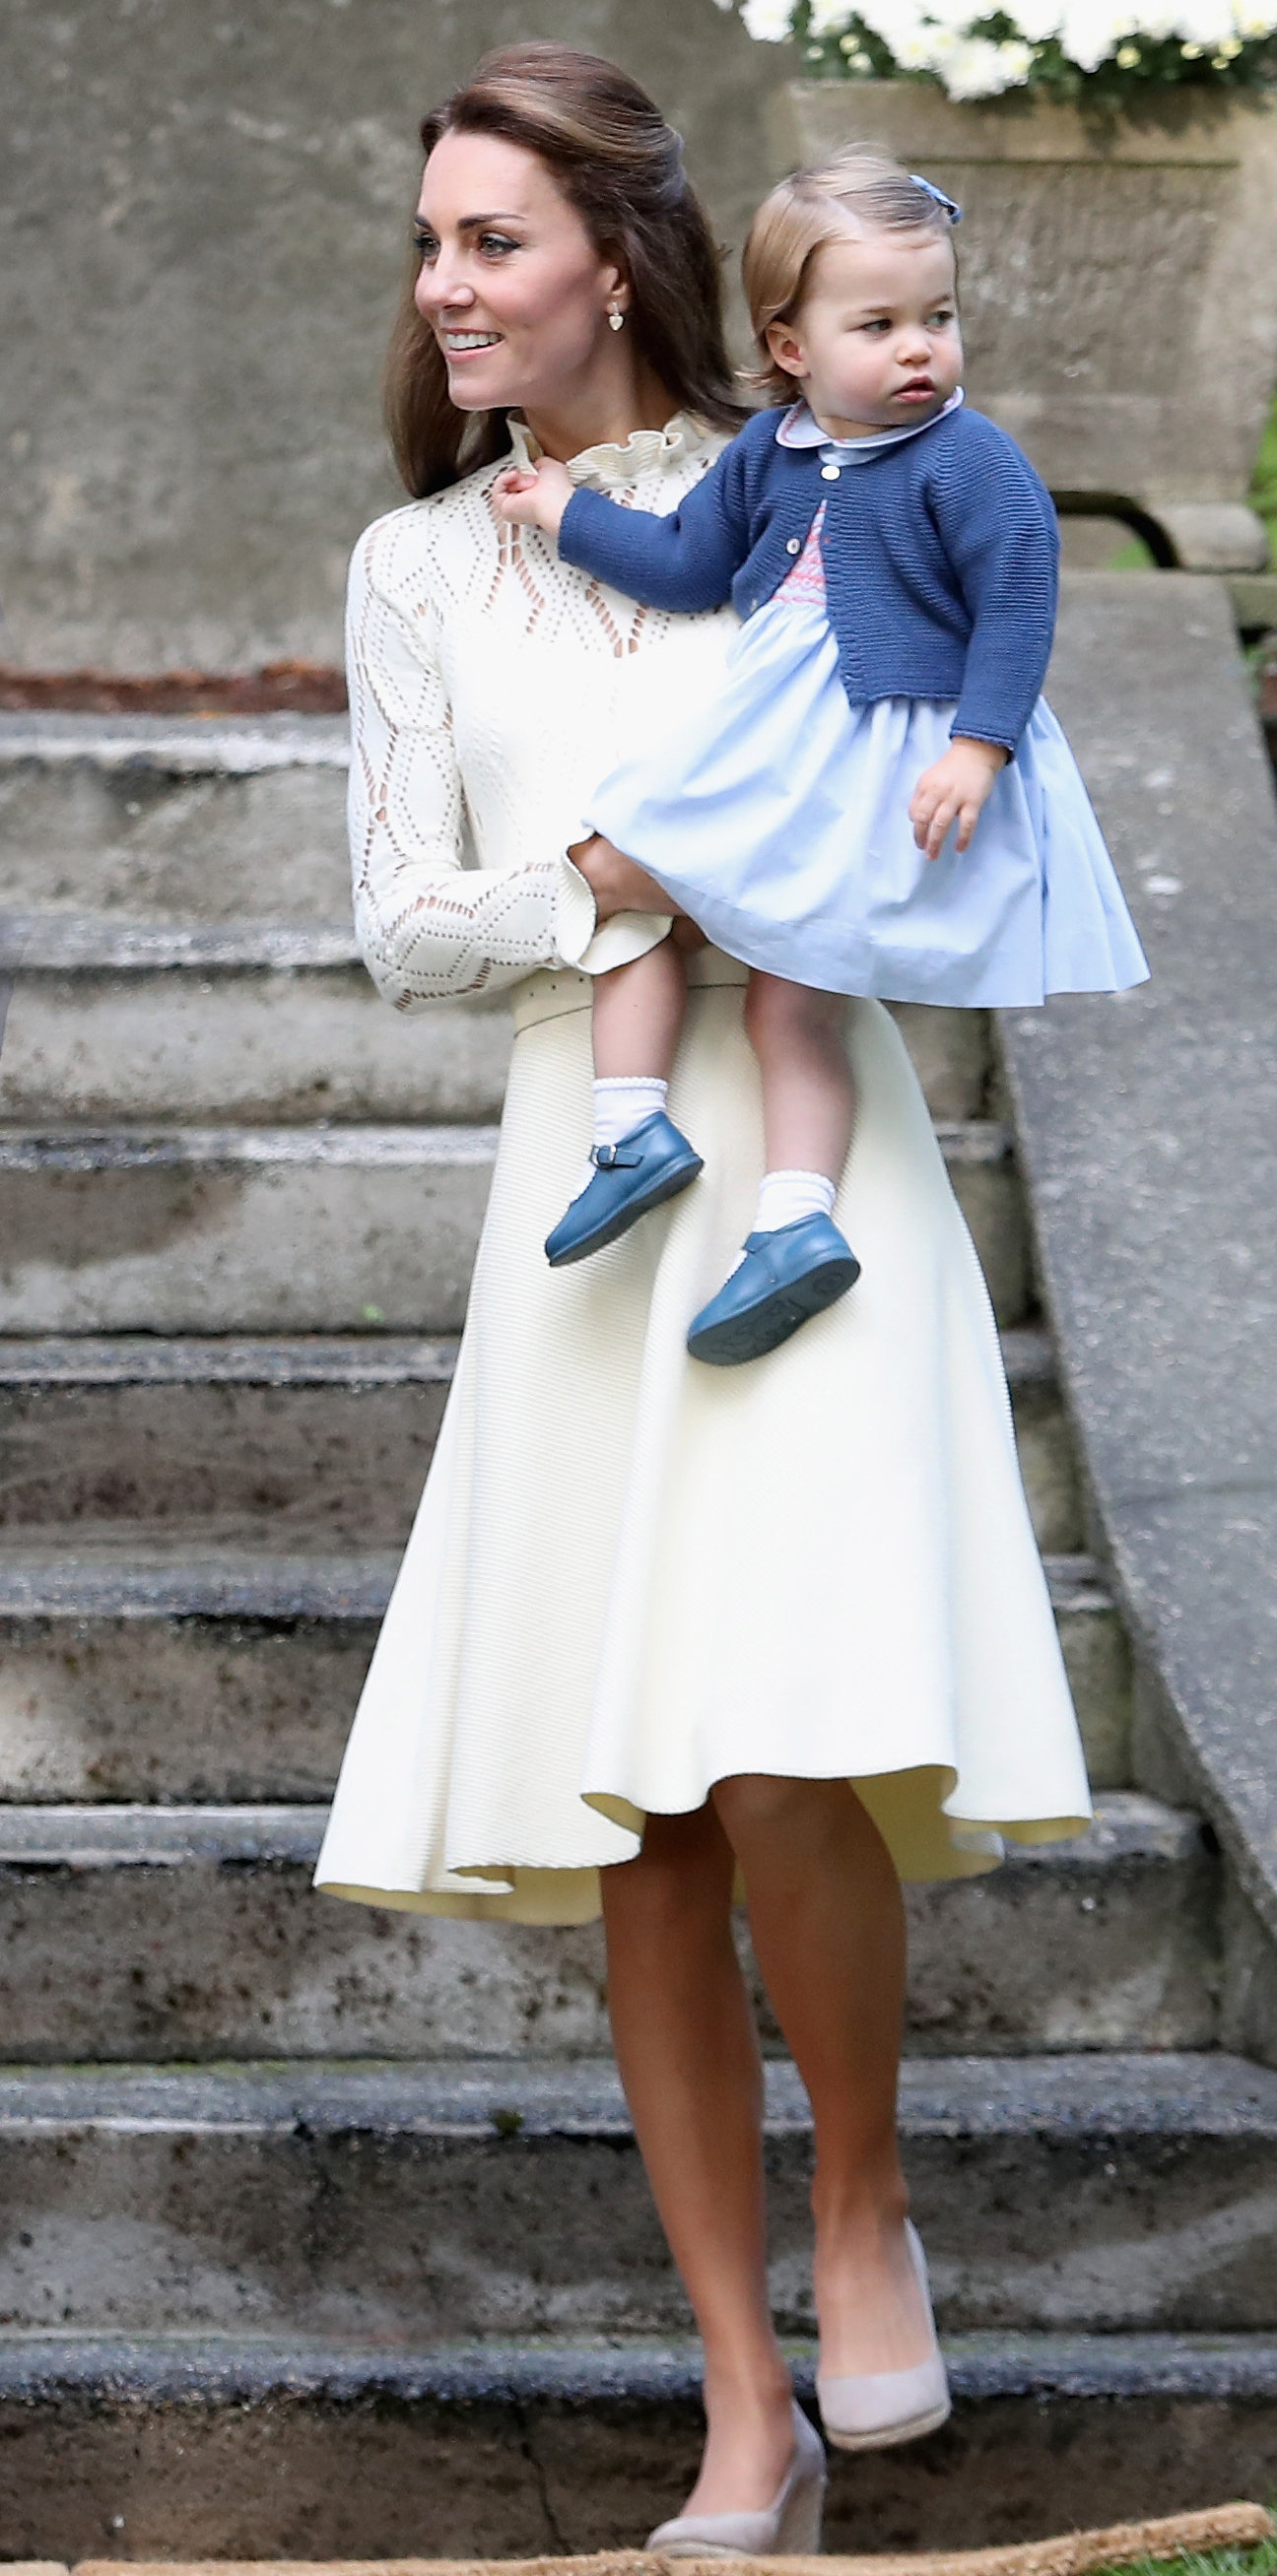 d03379de18c Kate Middleton Wears a Cream Dress for an Afternoon with Princess ...